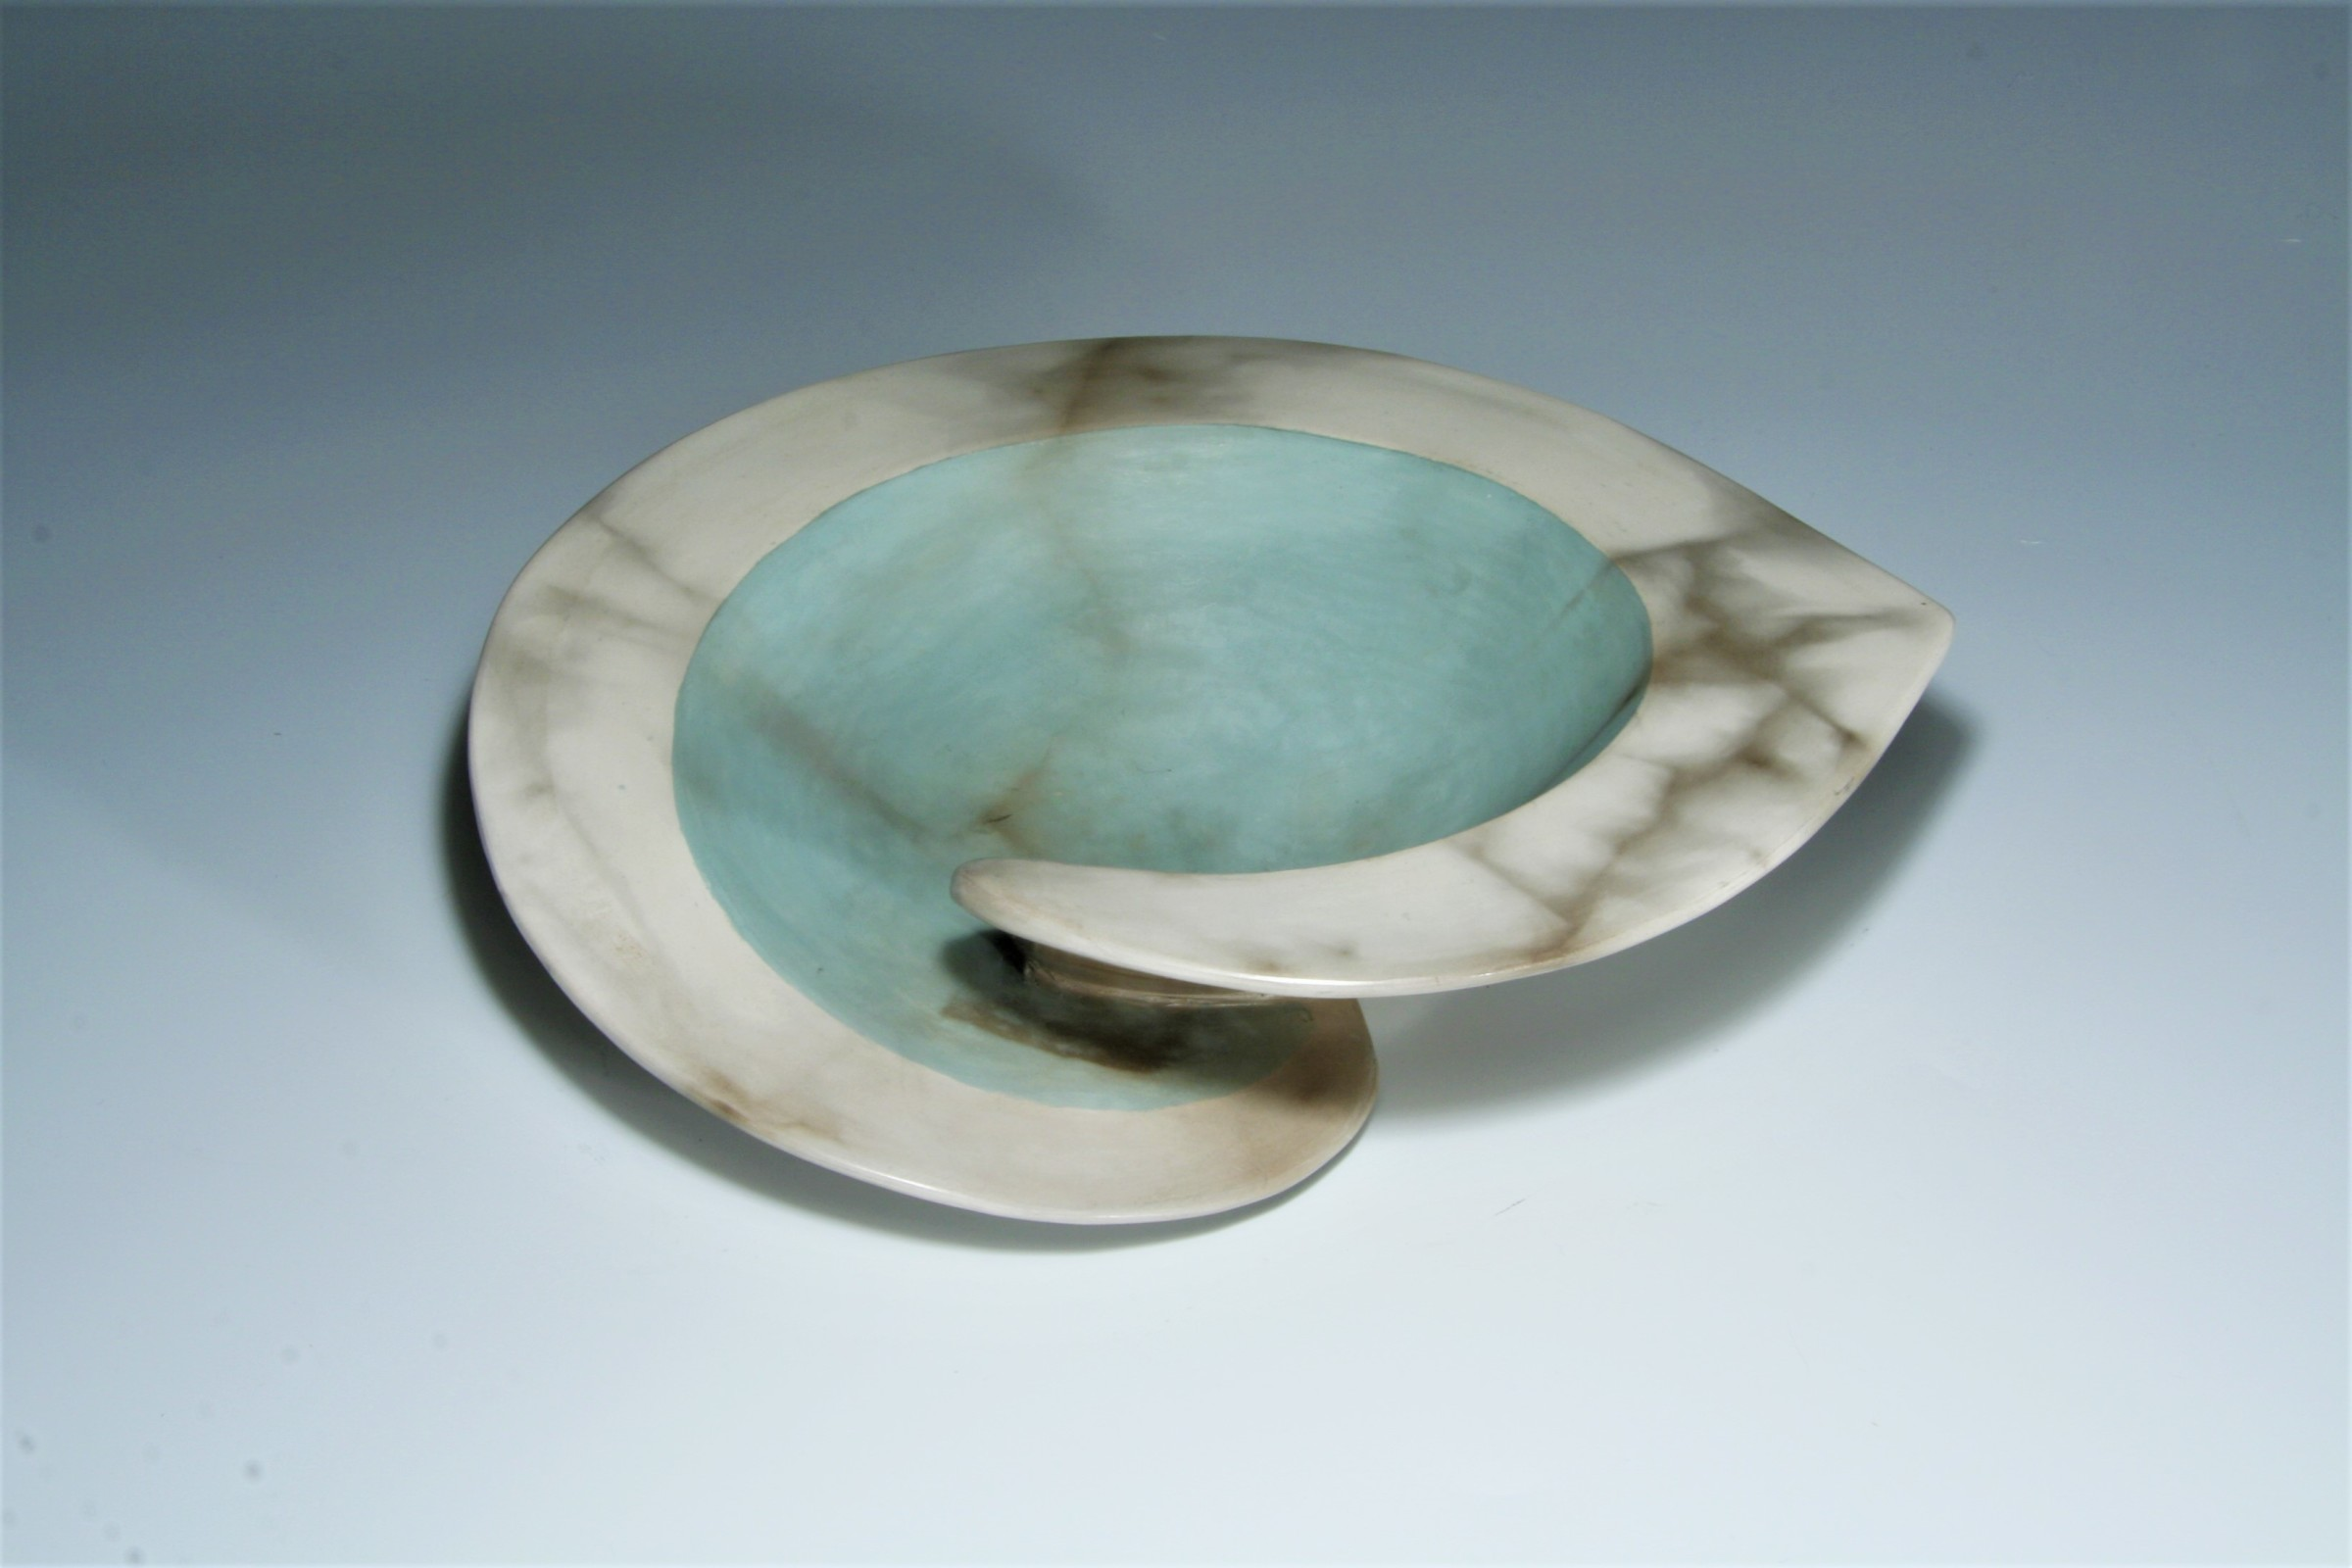 "<span class=""link fancybox-details-link""><a href=""/artists/38-antonia-salmon/works/6649-antonia-salmon-green-dervish-bowl-2019/"">View Detail Page</a></span><div class=""artist""><strong>Antonia Salmon</strong></div> <div class=""title""><em>Green Dervish Bowl</em>, 2019</div> <div class=""signed_and_dated"">stamped AS</div> <div class=""medium"">ceramic</div><div class=""price"">£235.00</div><div class=""copyright_line"">OwnArt: £23.50 x 10 Months, 0% APR</div>"